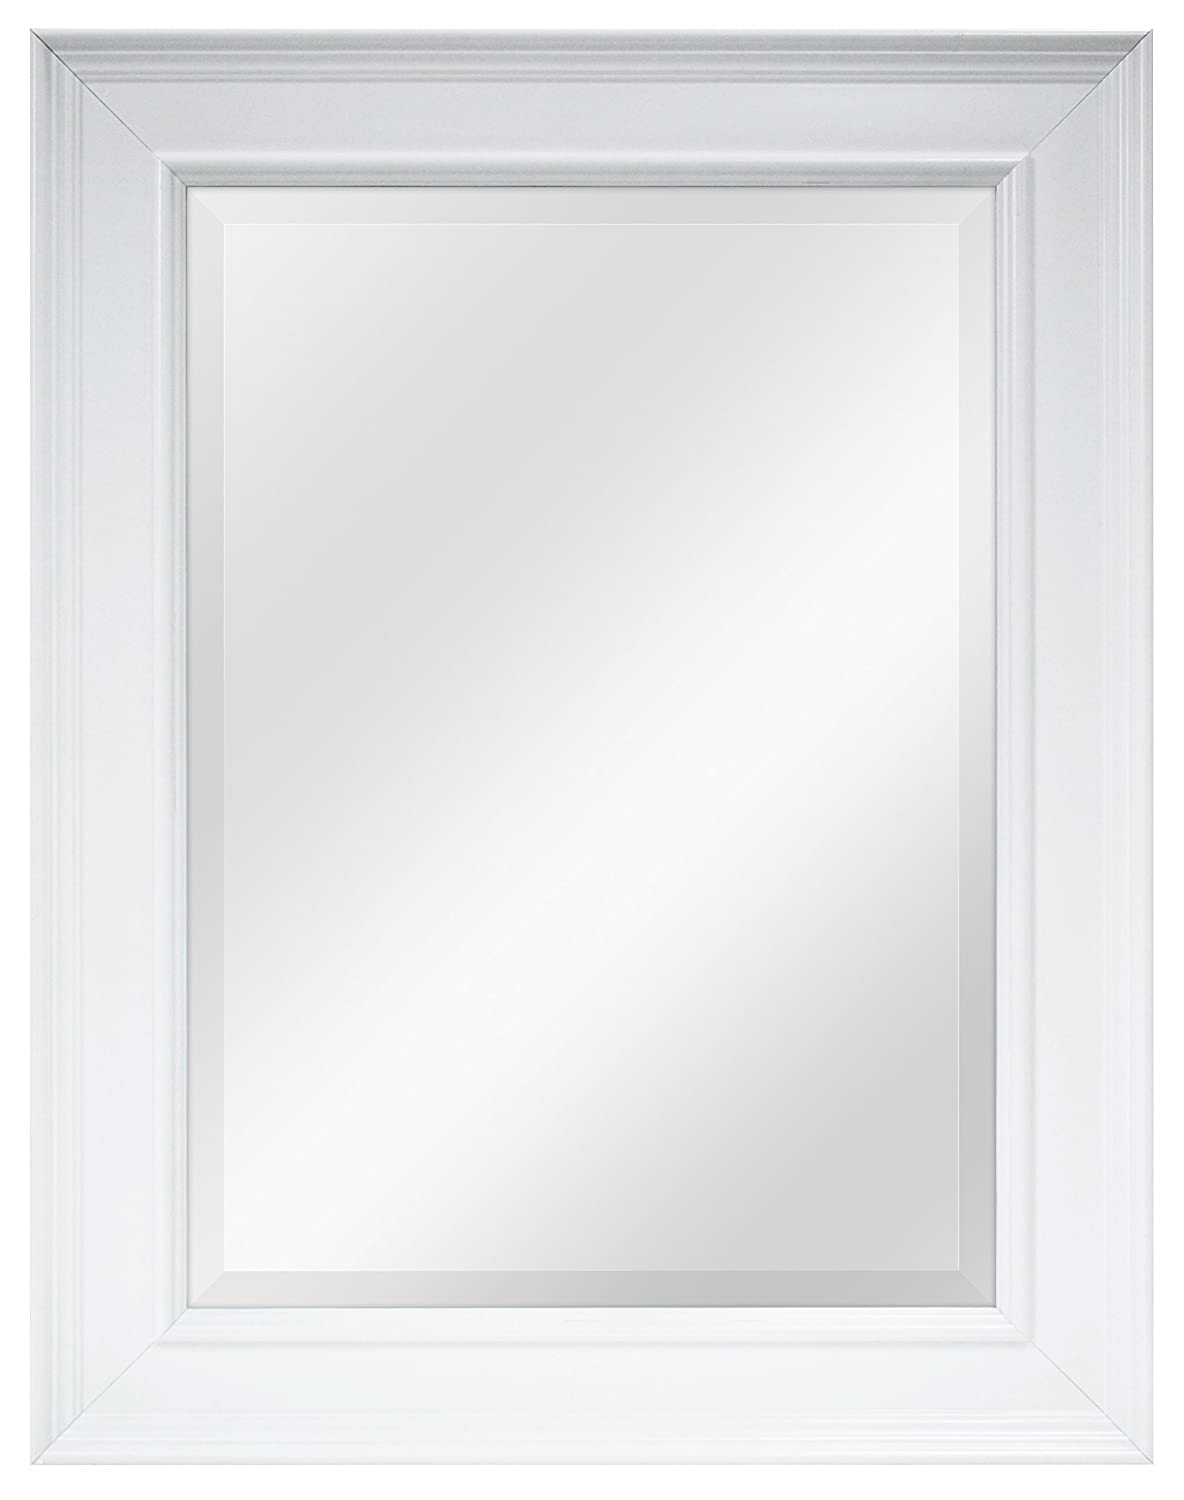 Amazon.com: MCS 15.5x21.5 Inch Beveled Mirror, 22.5x27.5 Inch Overall Size,  White (20450): Home U0026 Kitchen